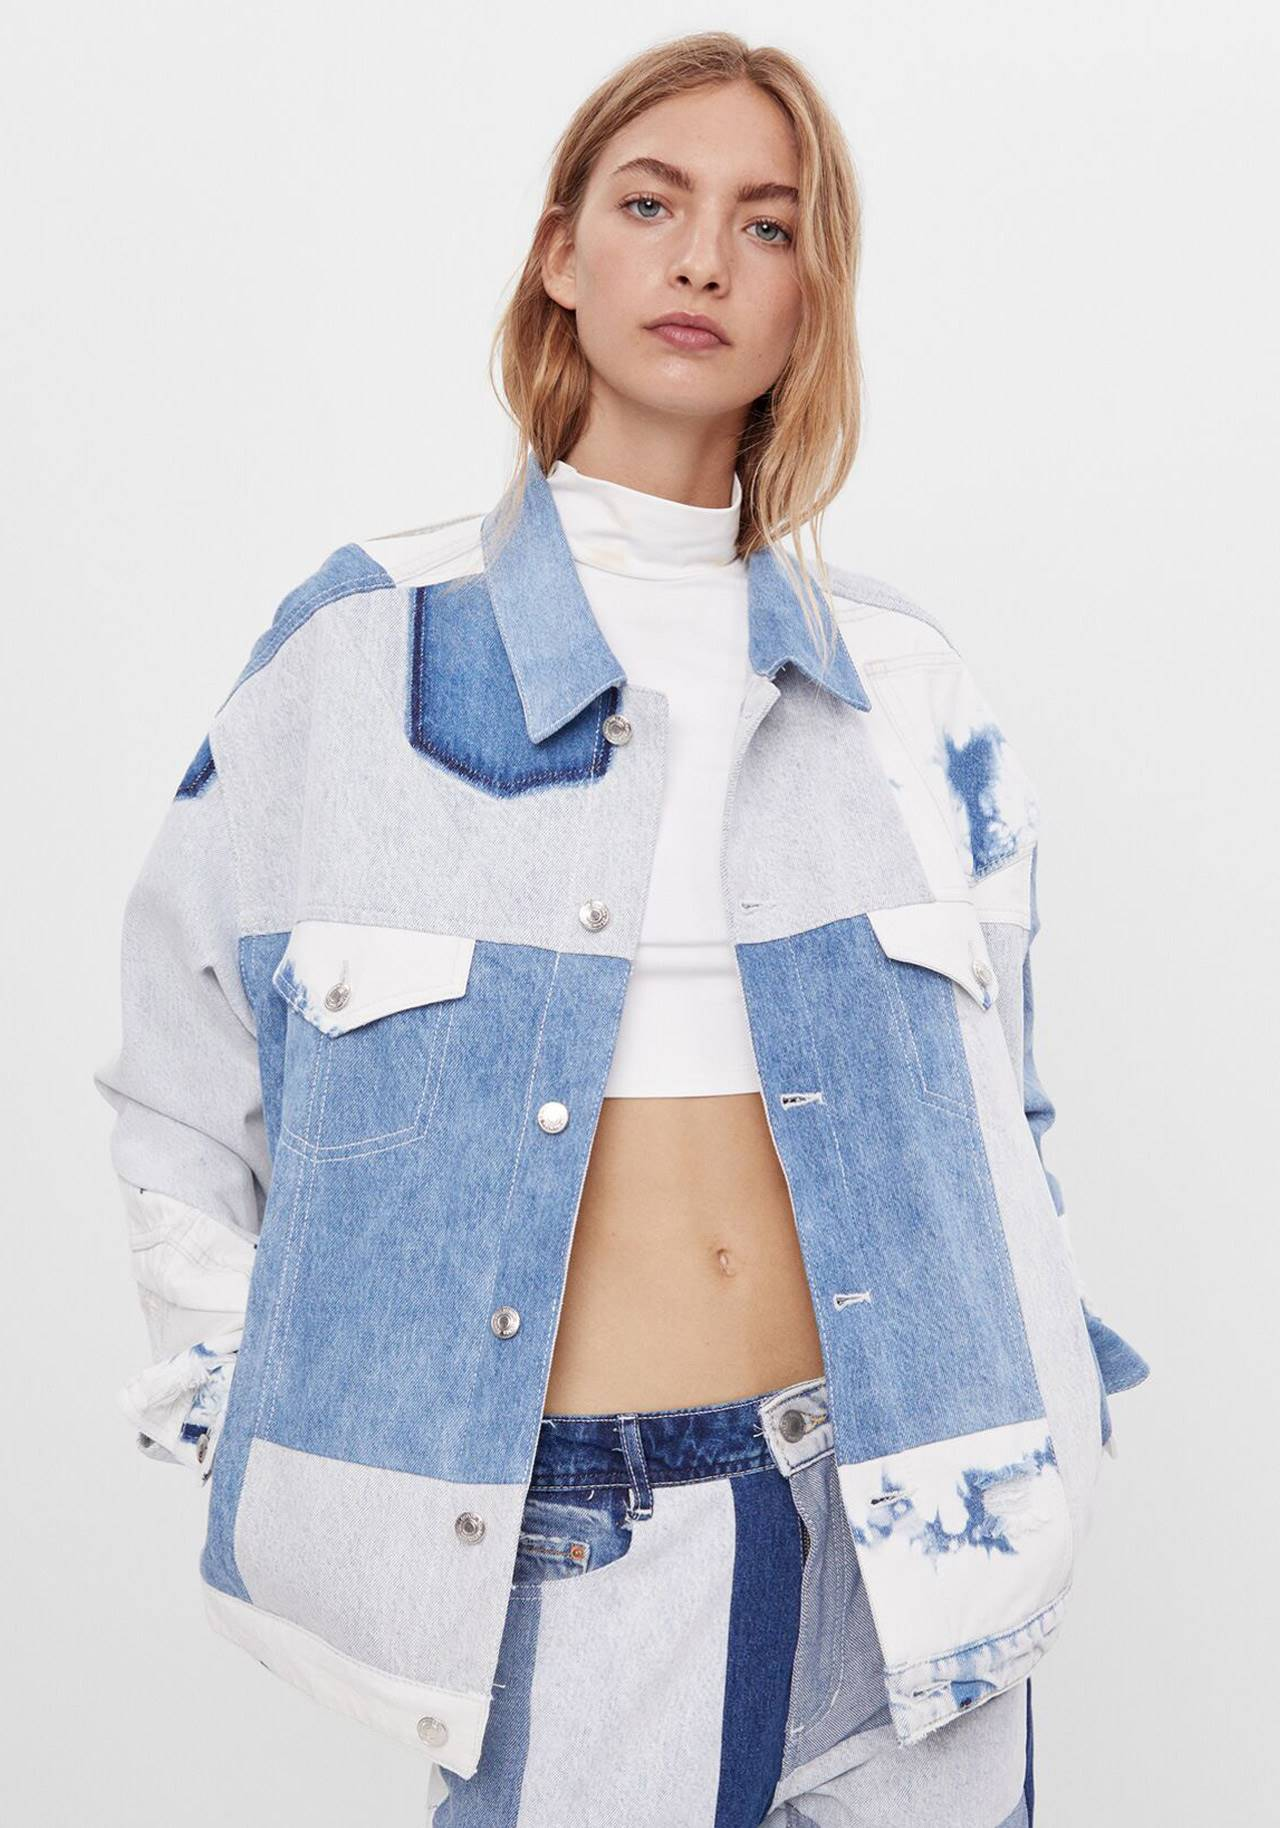 hack denim bershka